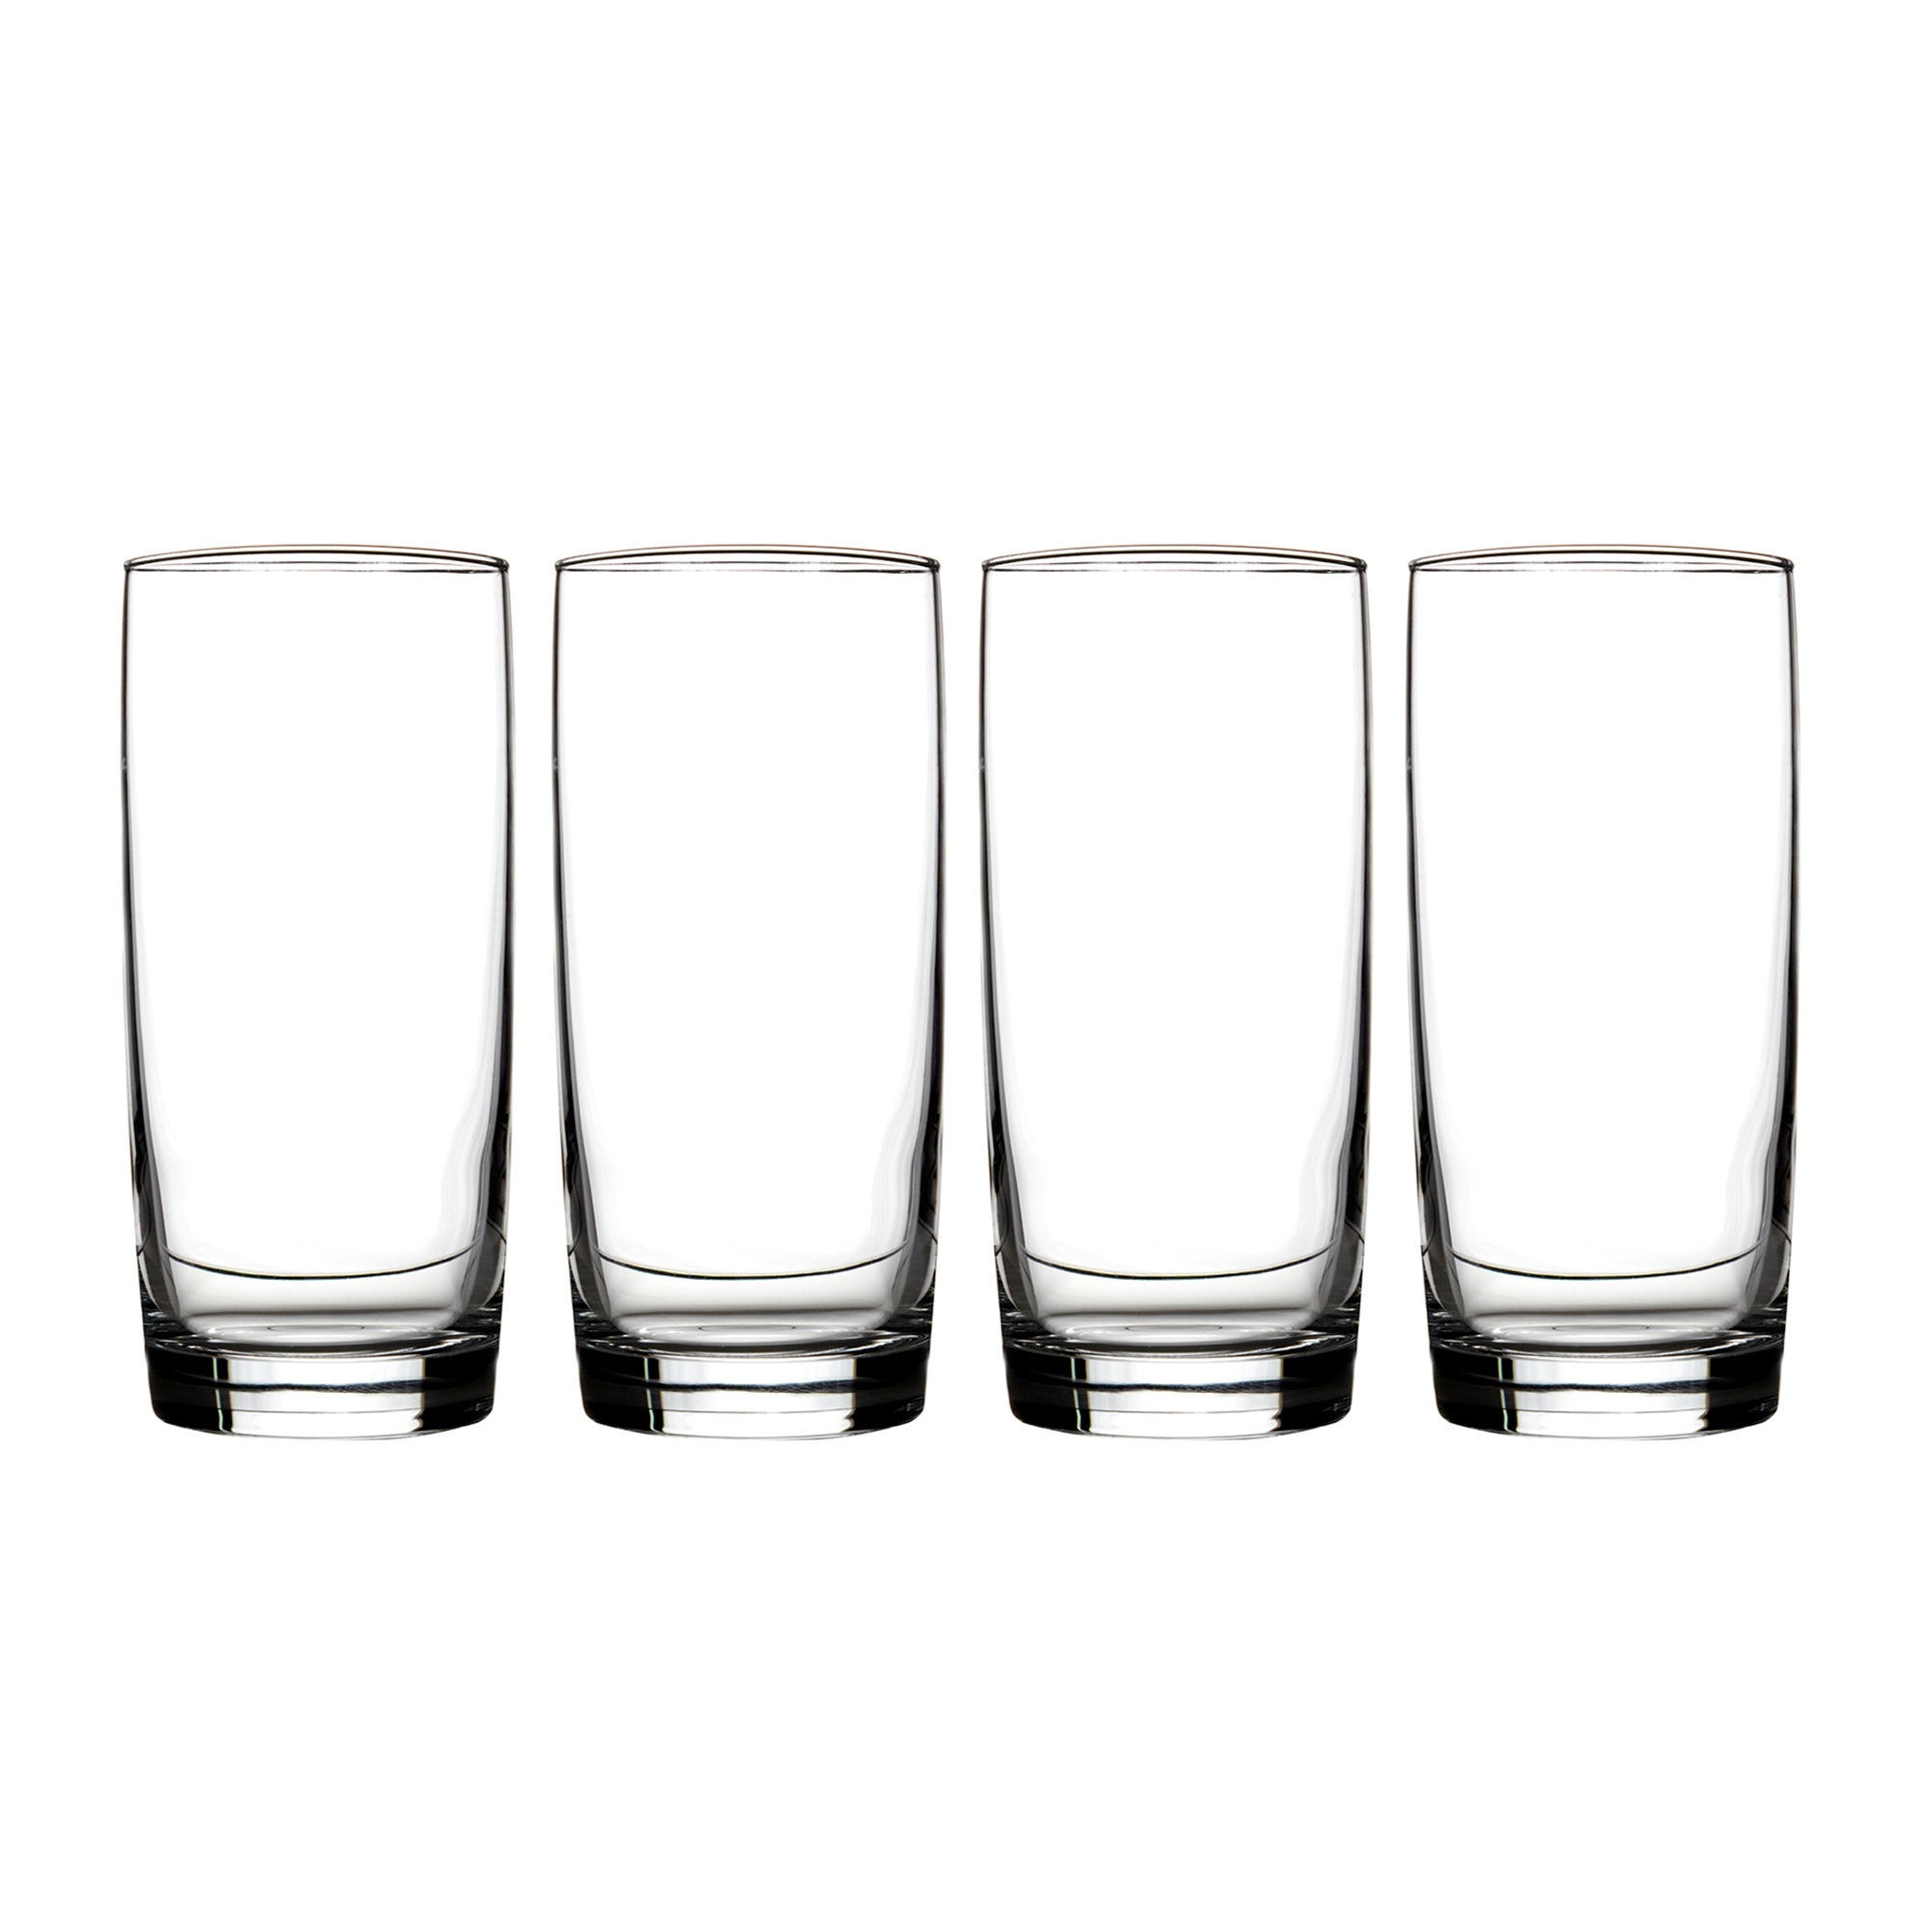 Pausa Endessa Set of 4 Hiball Glasses